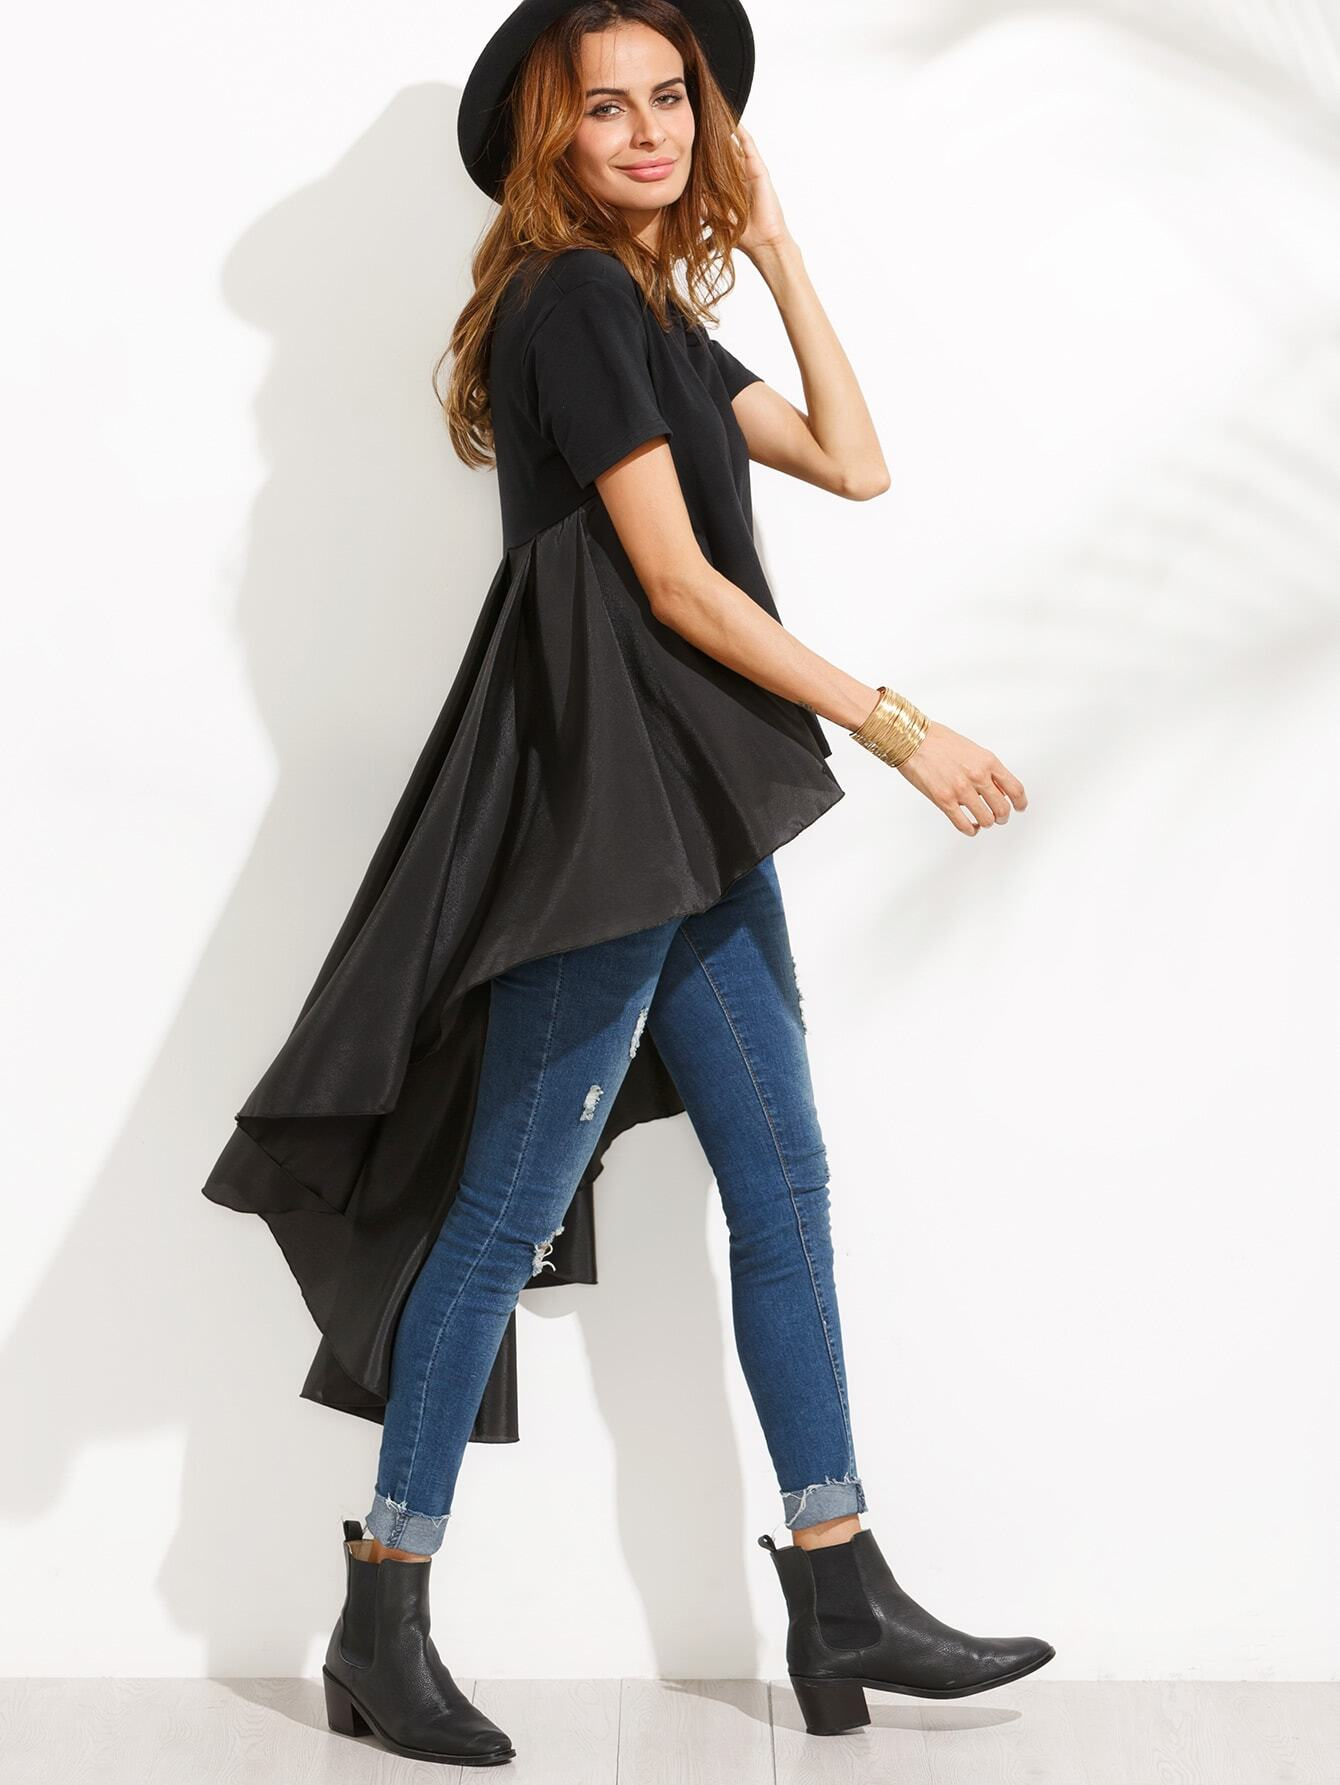 Black High Low Top With Ruffle Tailfor Women Romwe